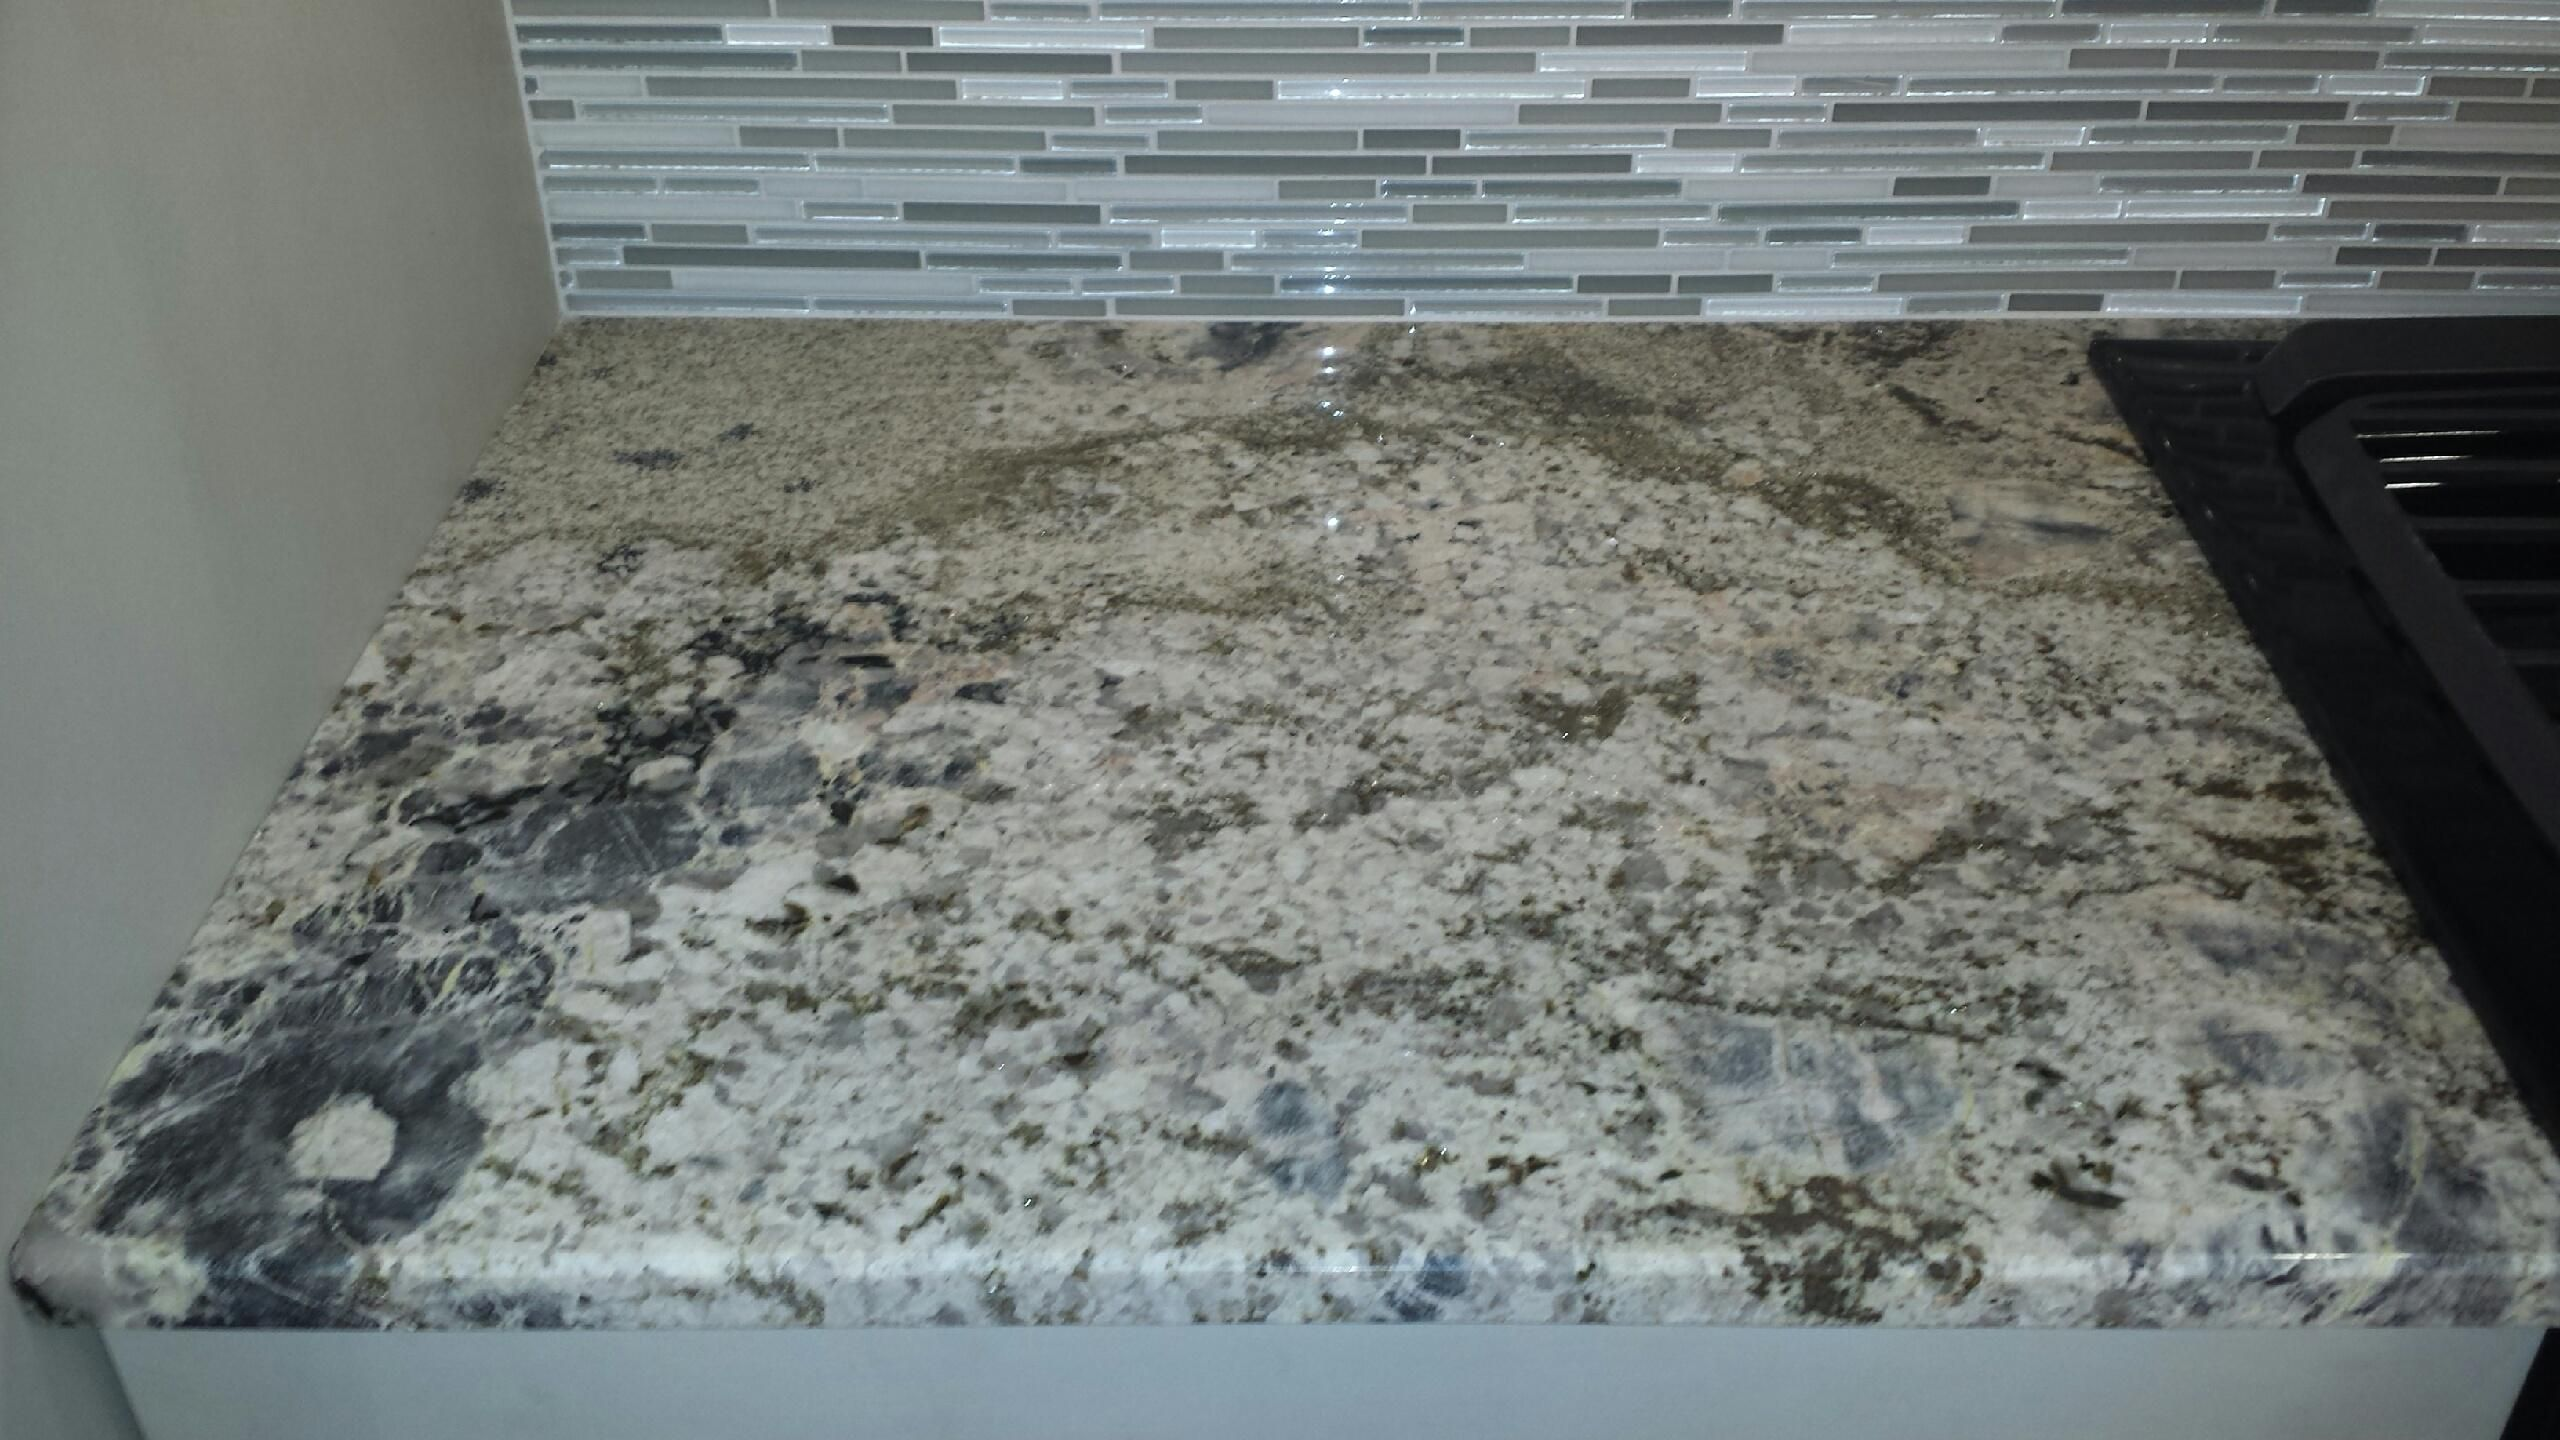 Another sample of the blue flower granite kitchen